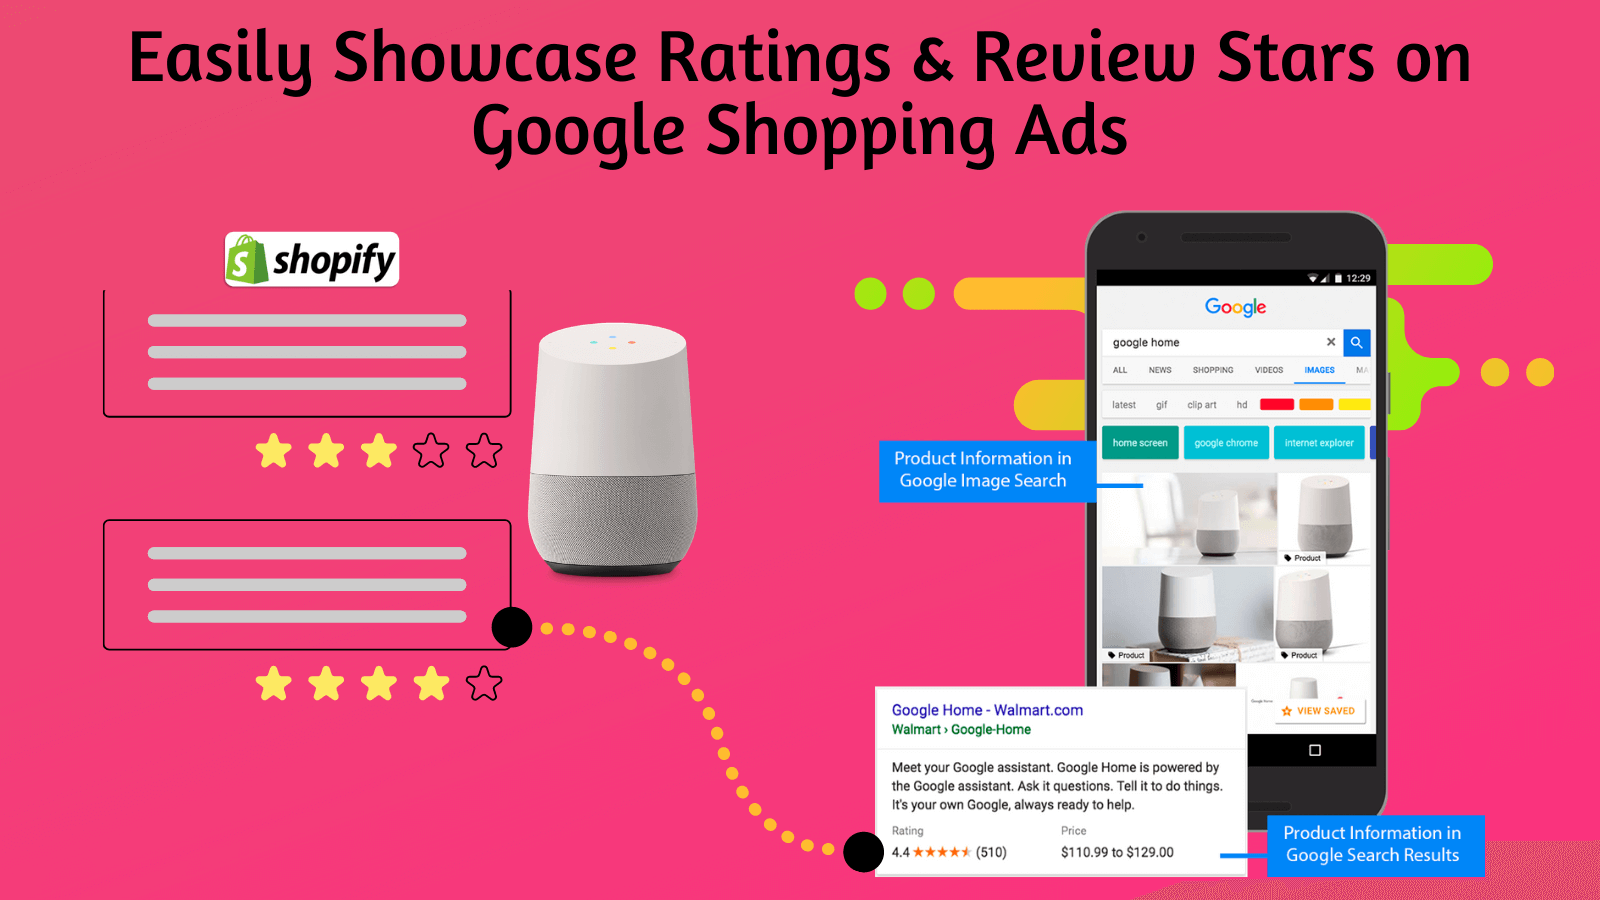 Amazon Reviews with Google Rich Snippets Stars and Ratings